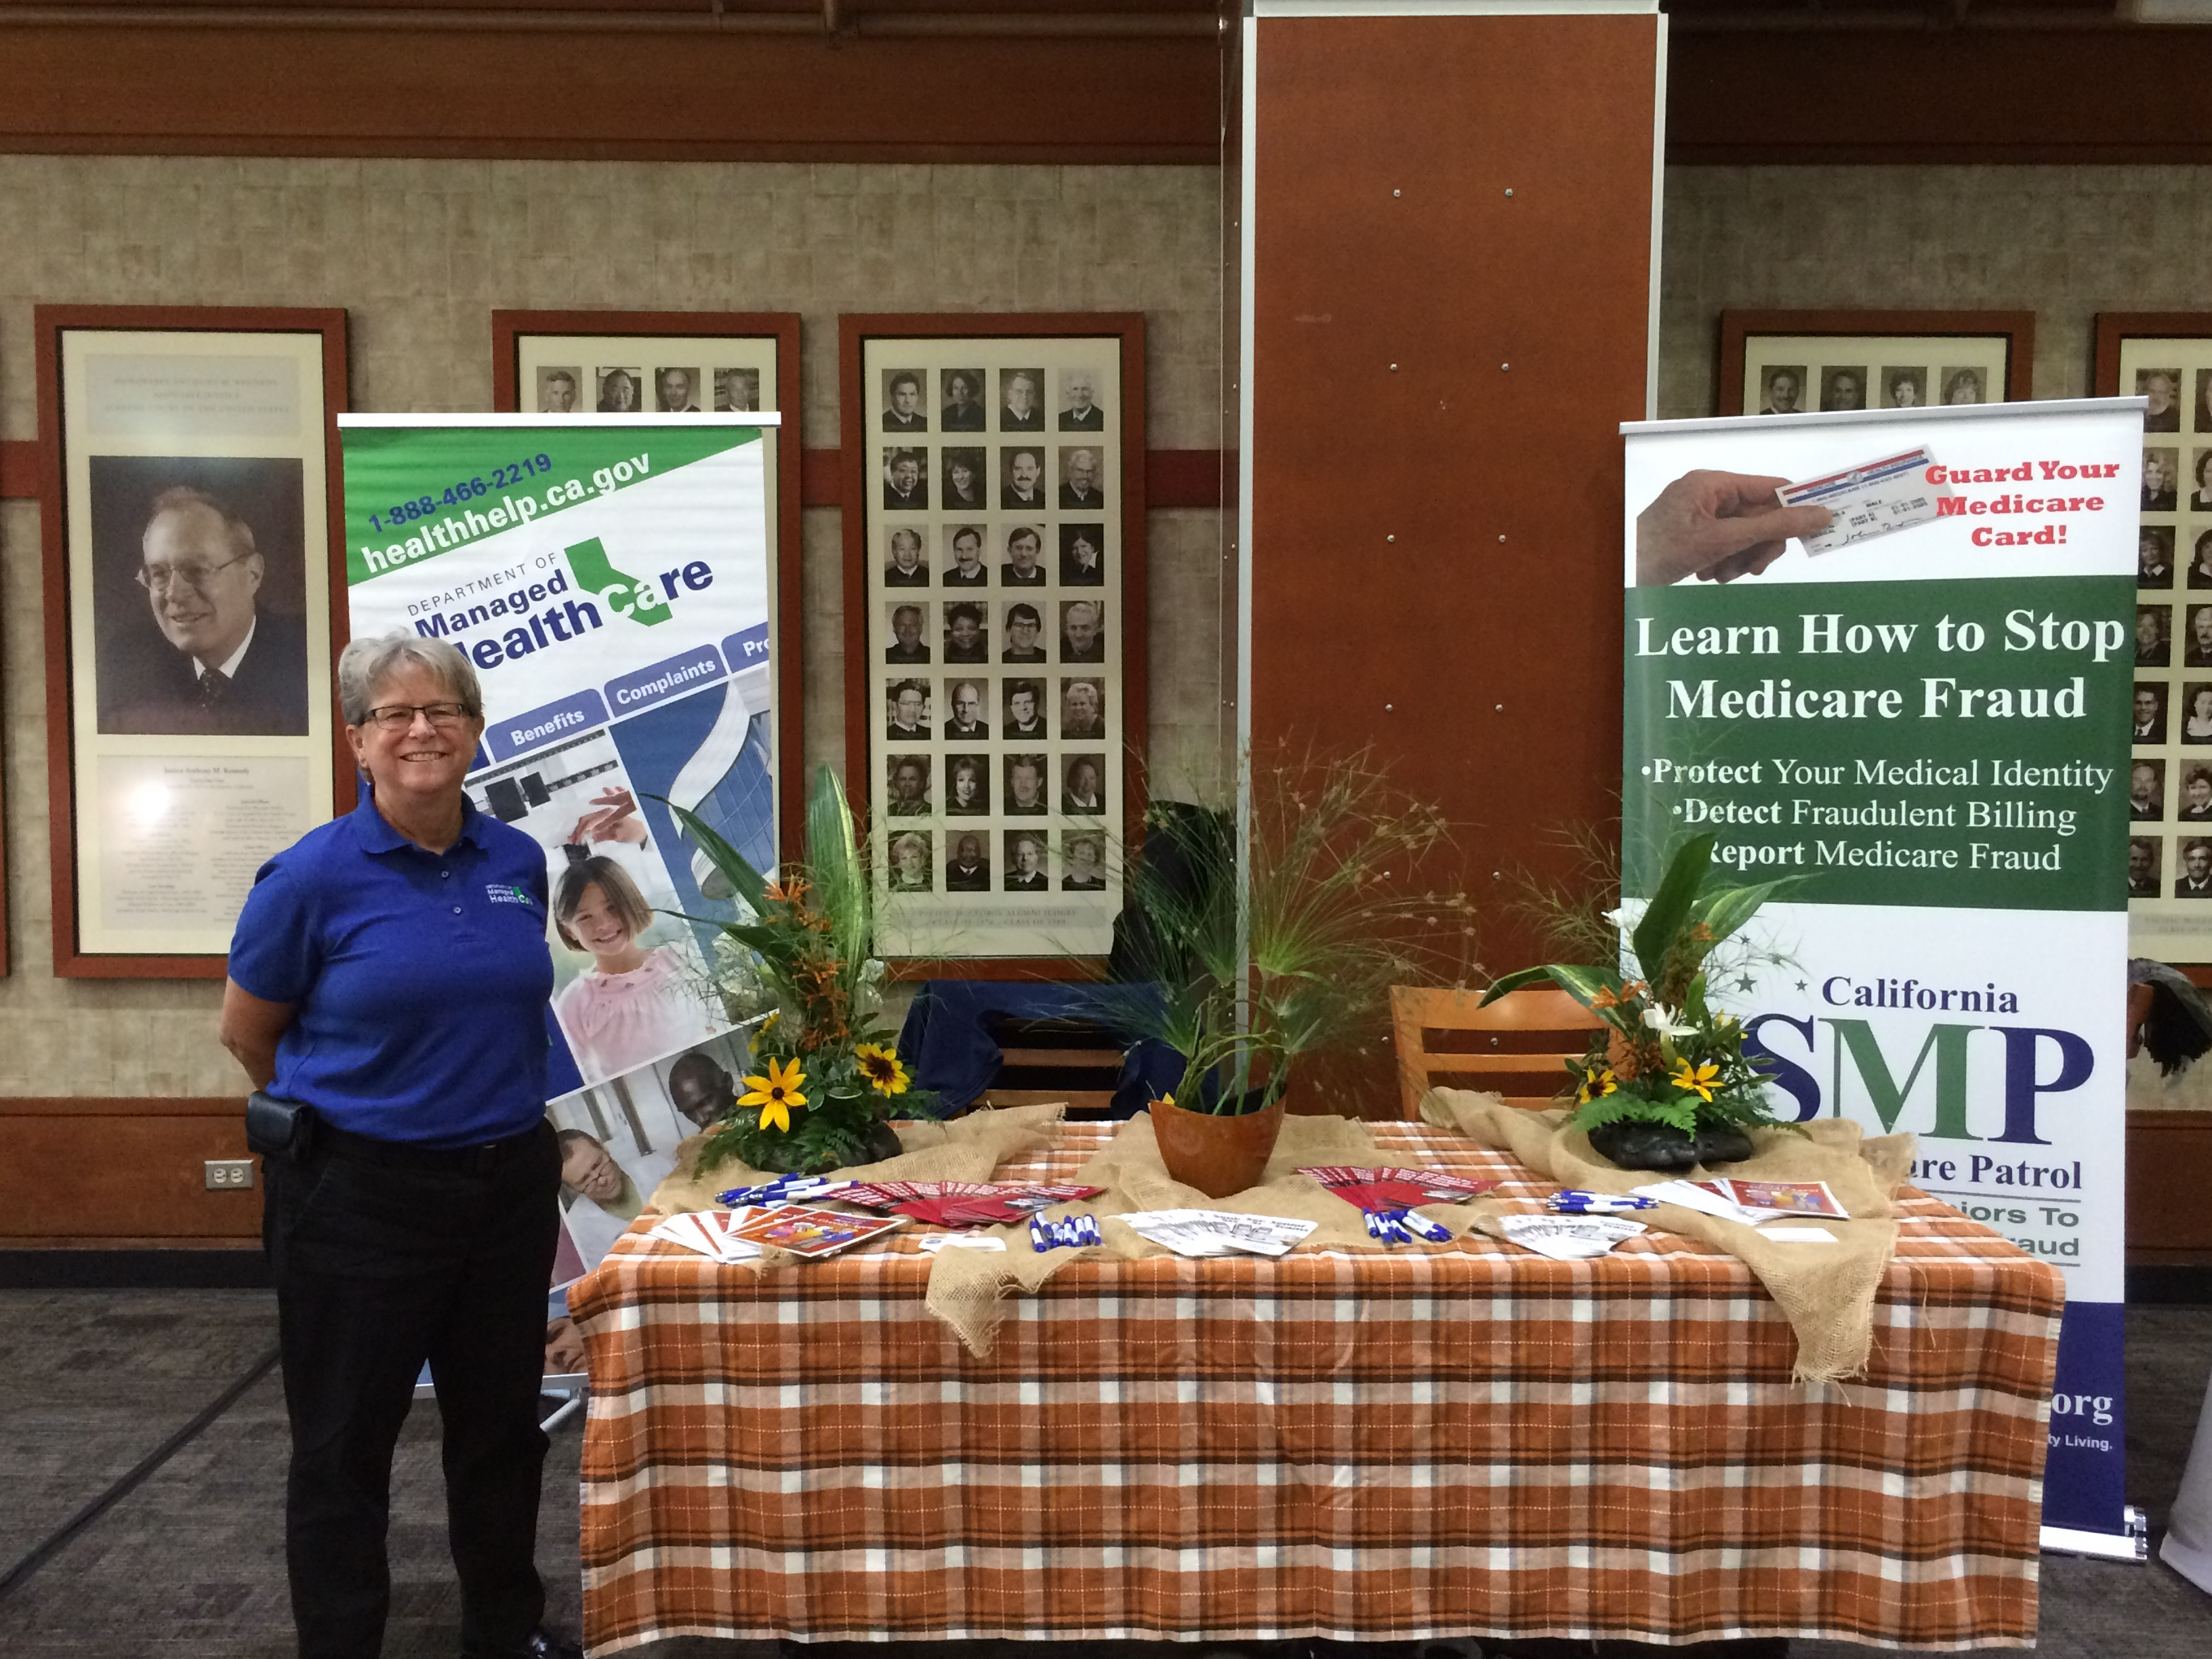 Julie Lowrie, Investigator with CA Dept of Managed Health Care and one of our stellar partners, supports SMP at a recent McGeorge School of Law event in Sacramento.